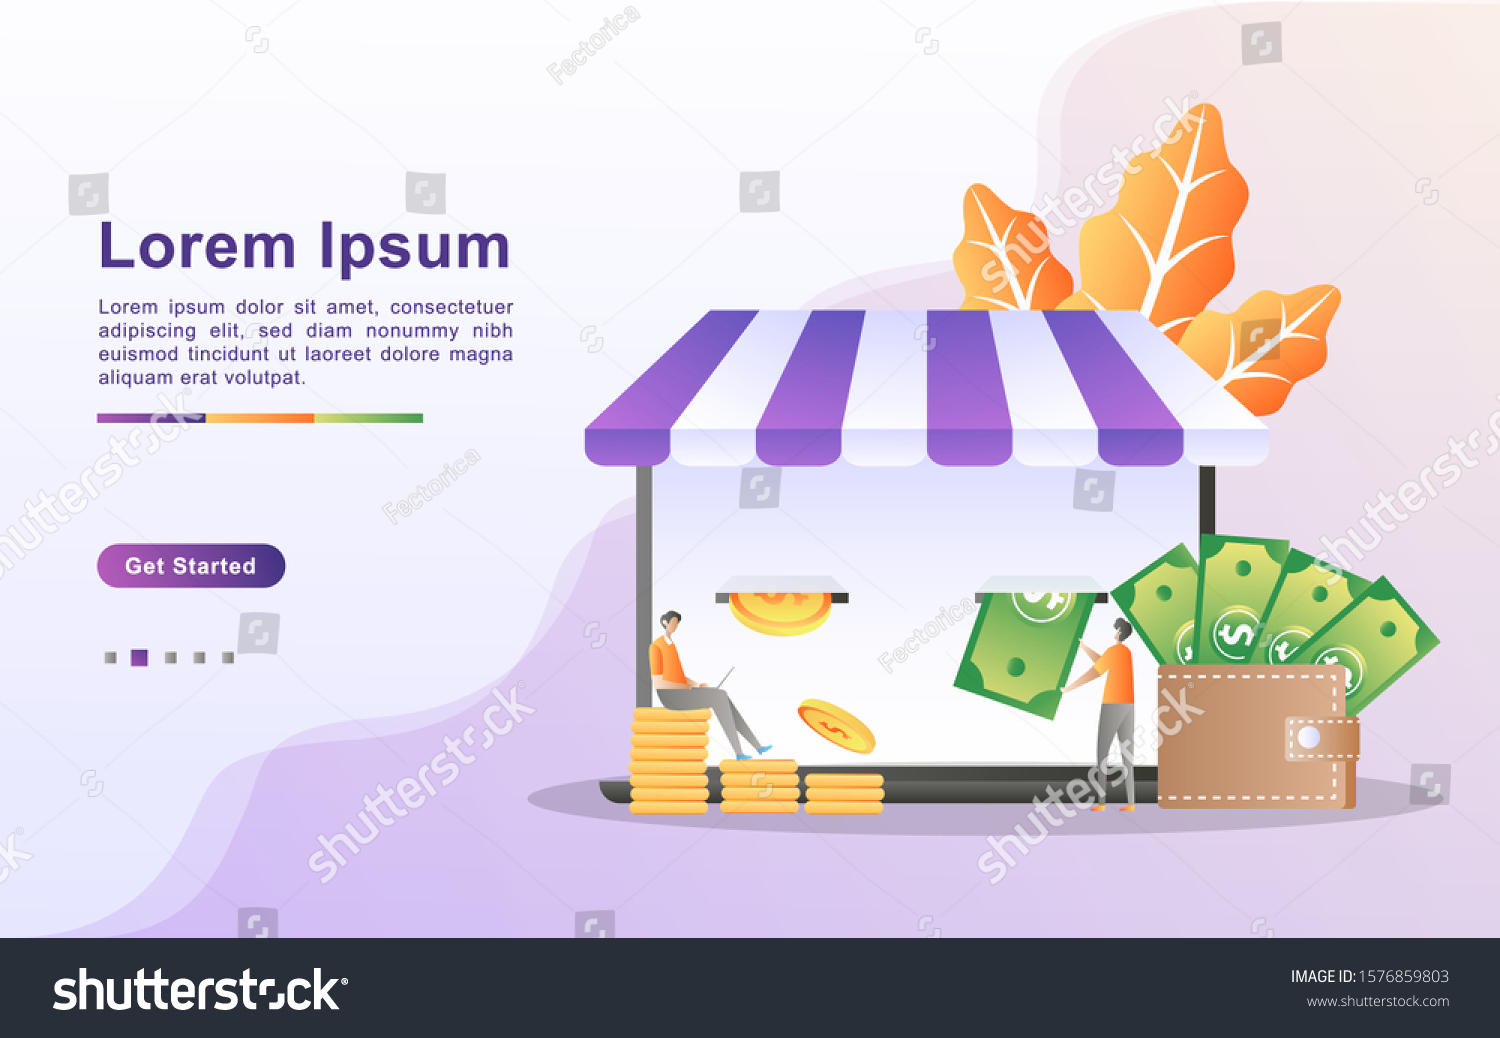 Earn Money Online Payment Concept Online Stock Vector Royalty Free 1576859803